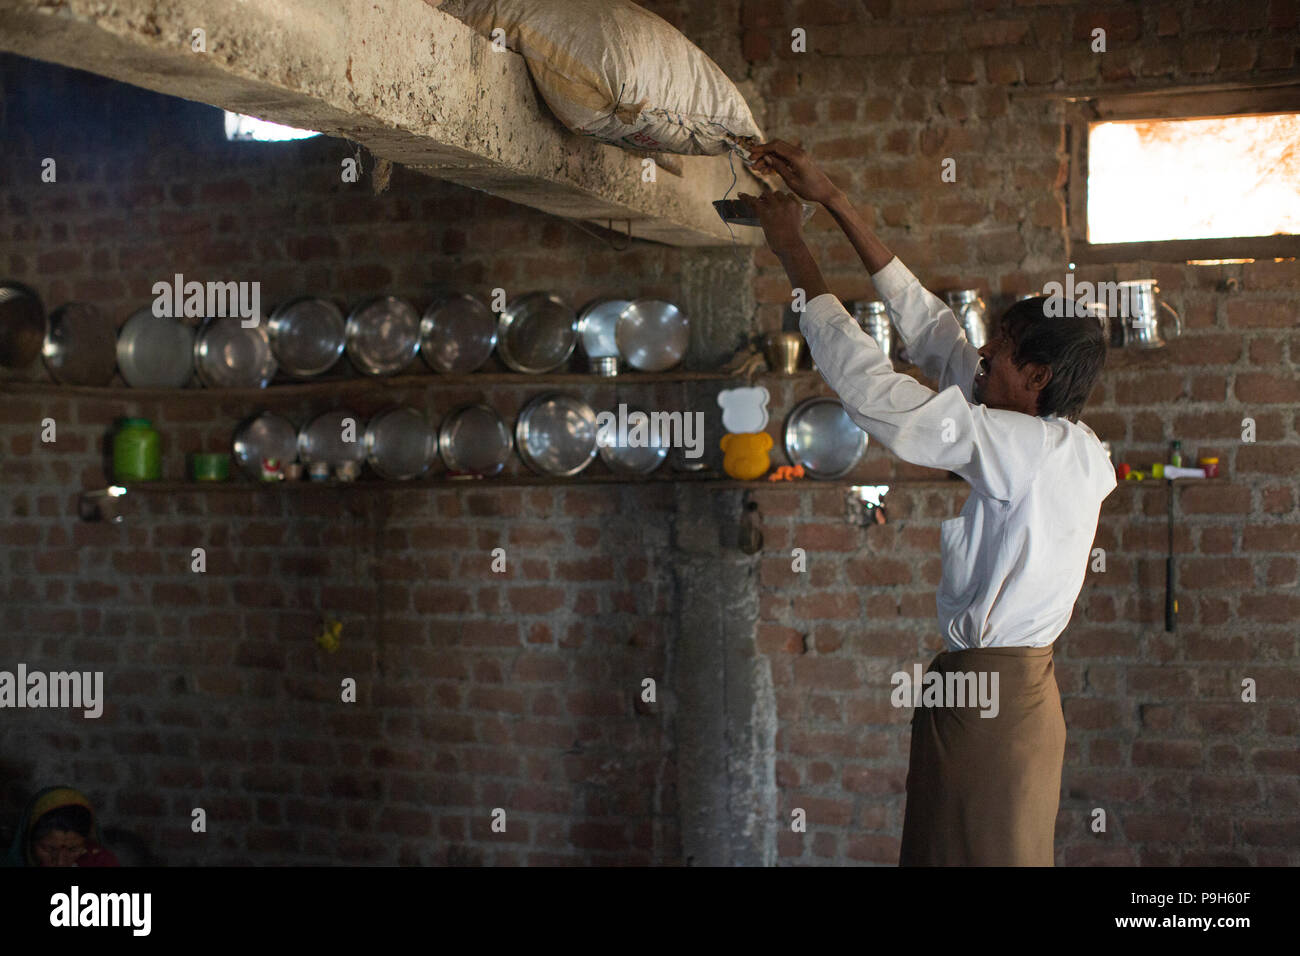 A man filling a bowl with groundnuts from a sack stored in the rafters of his kitchen, India. - Stock Image